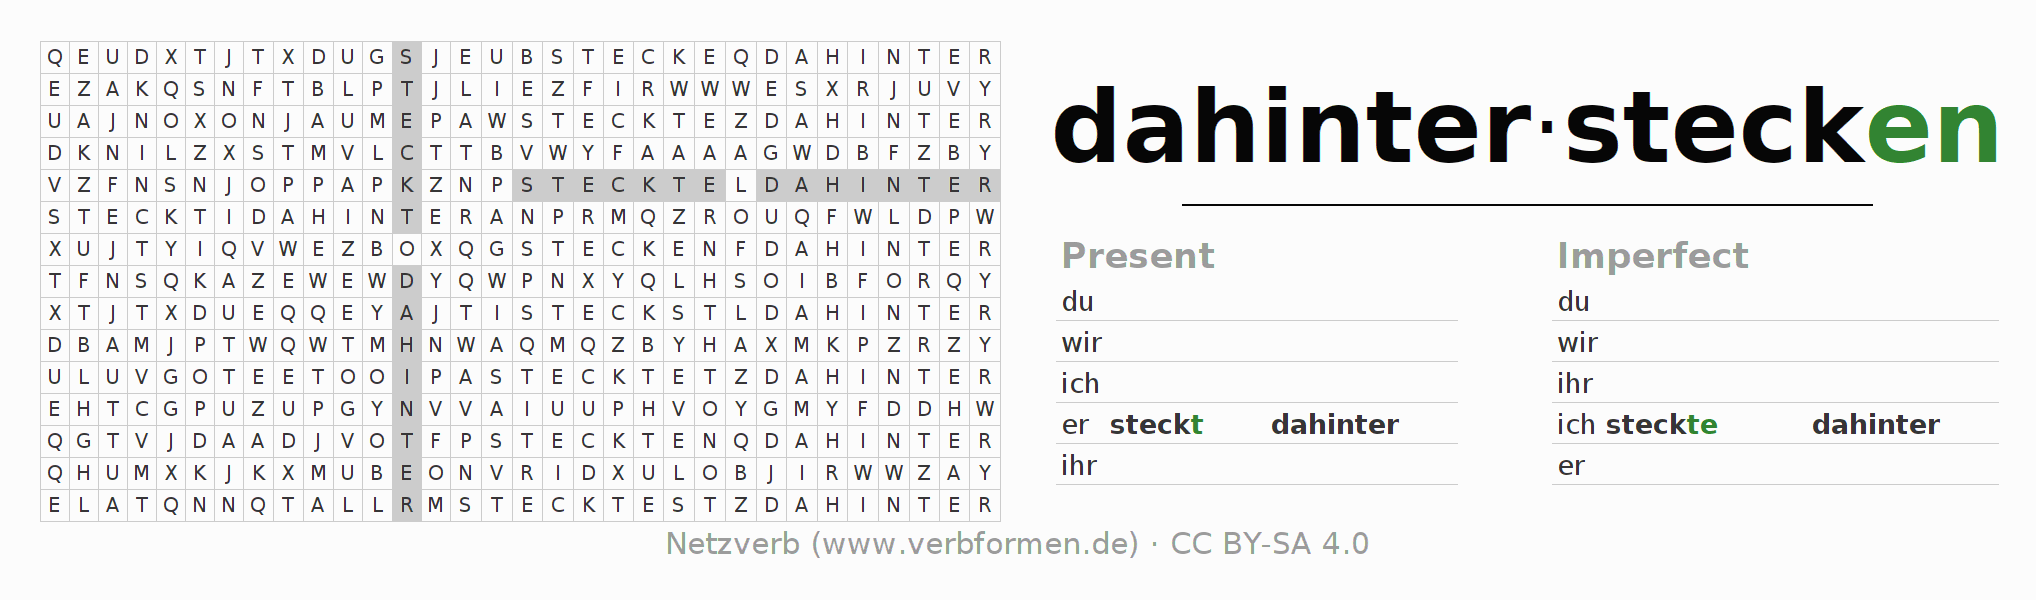 Word search puzzle for the conjugation of the verb dahinterstecken